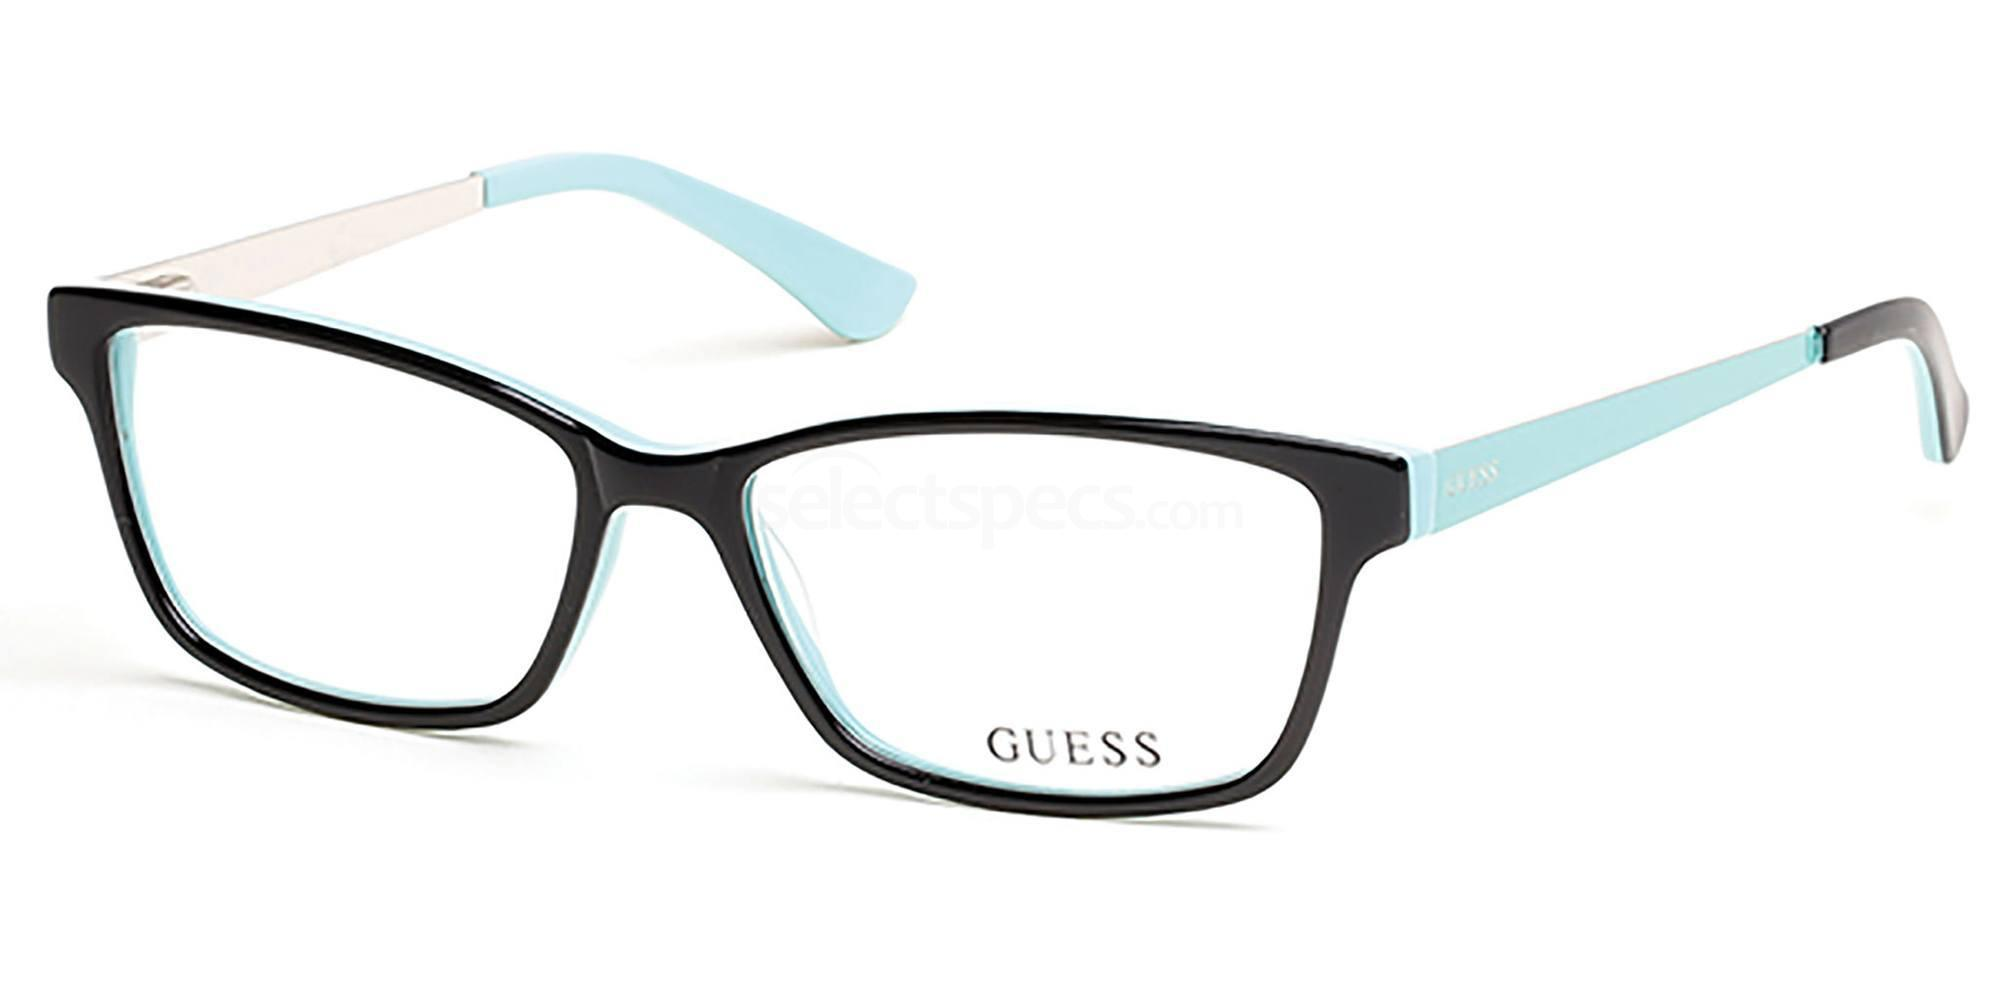 052 GU2538 Glasses, Guess